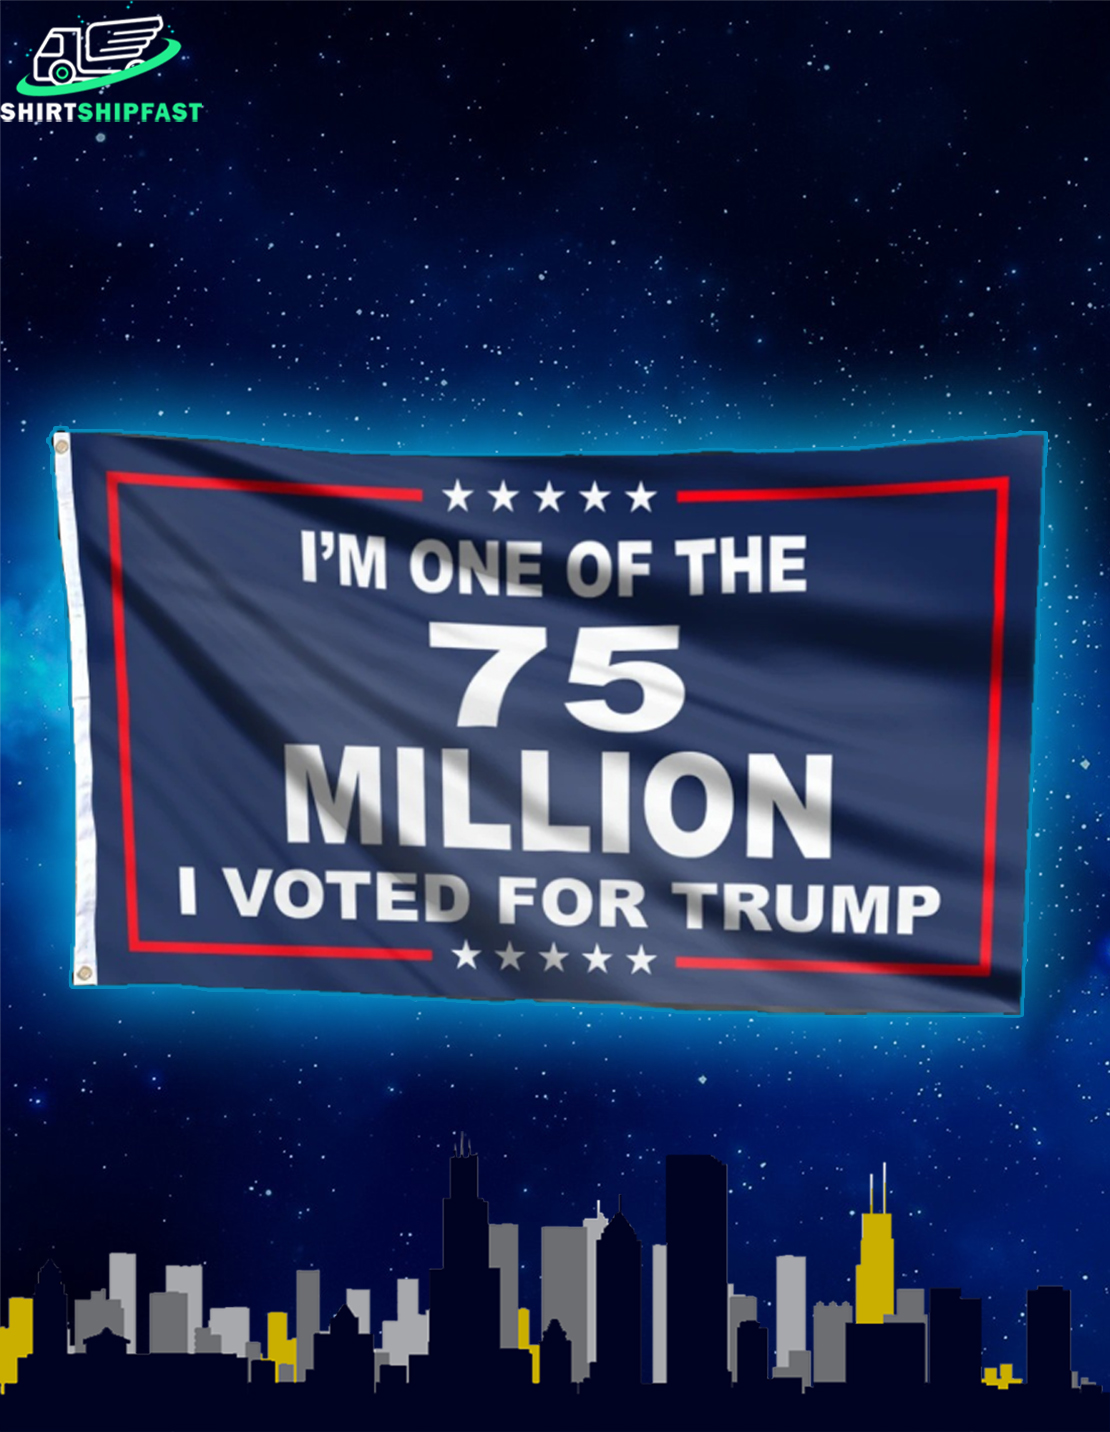 I'm one of the 75 million I voted for Trump flag - Picture 2